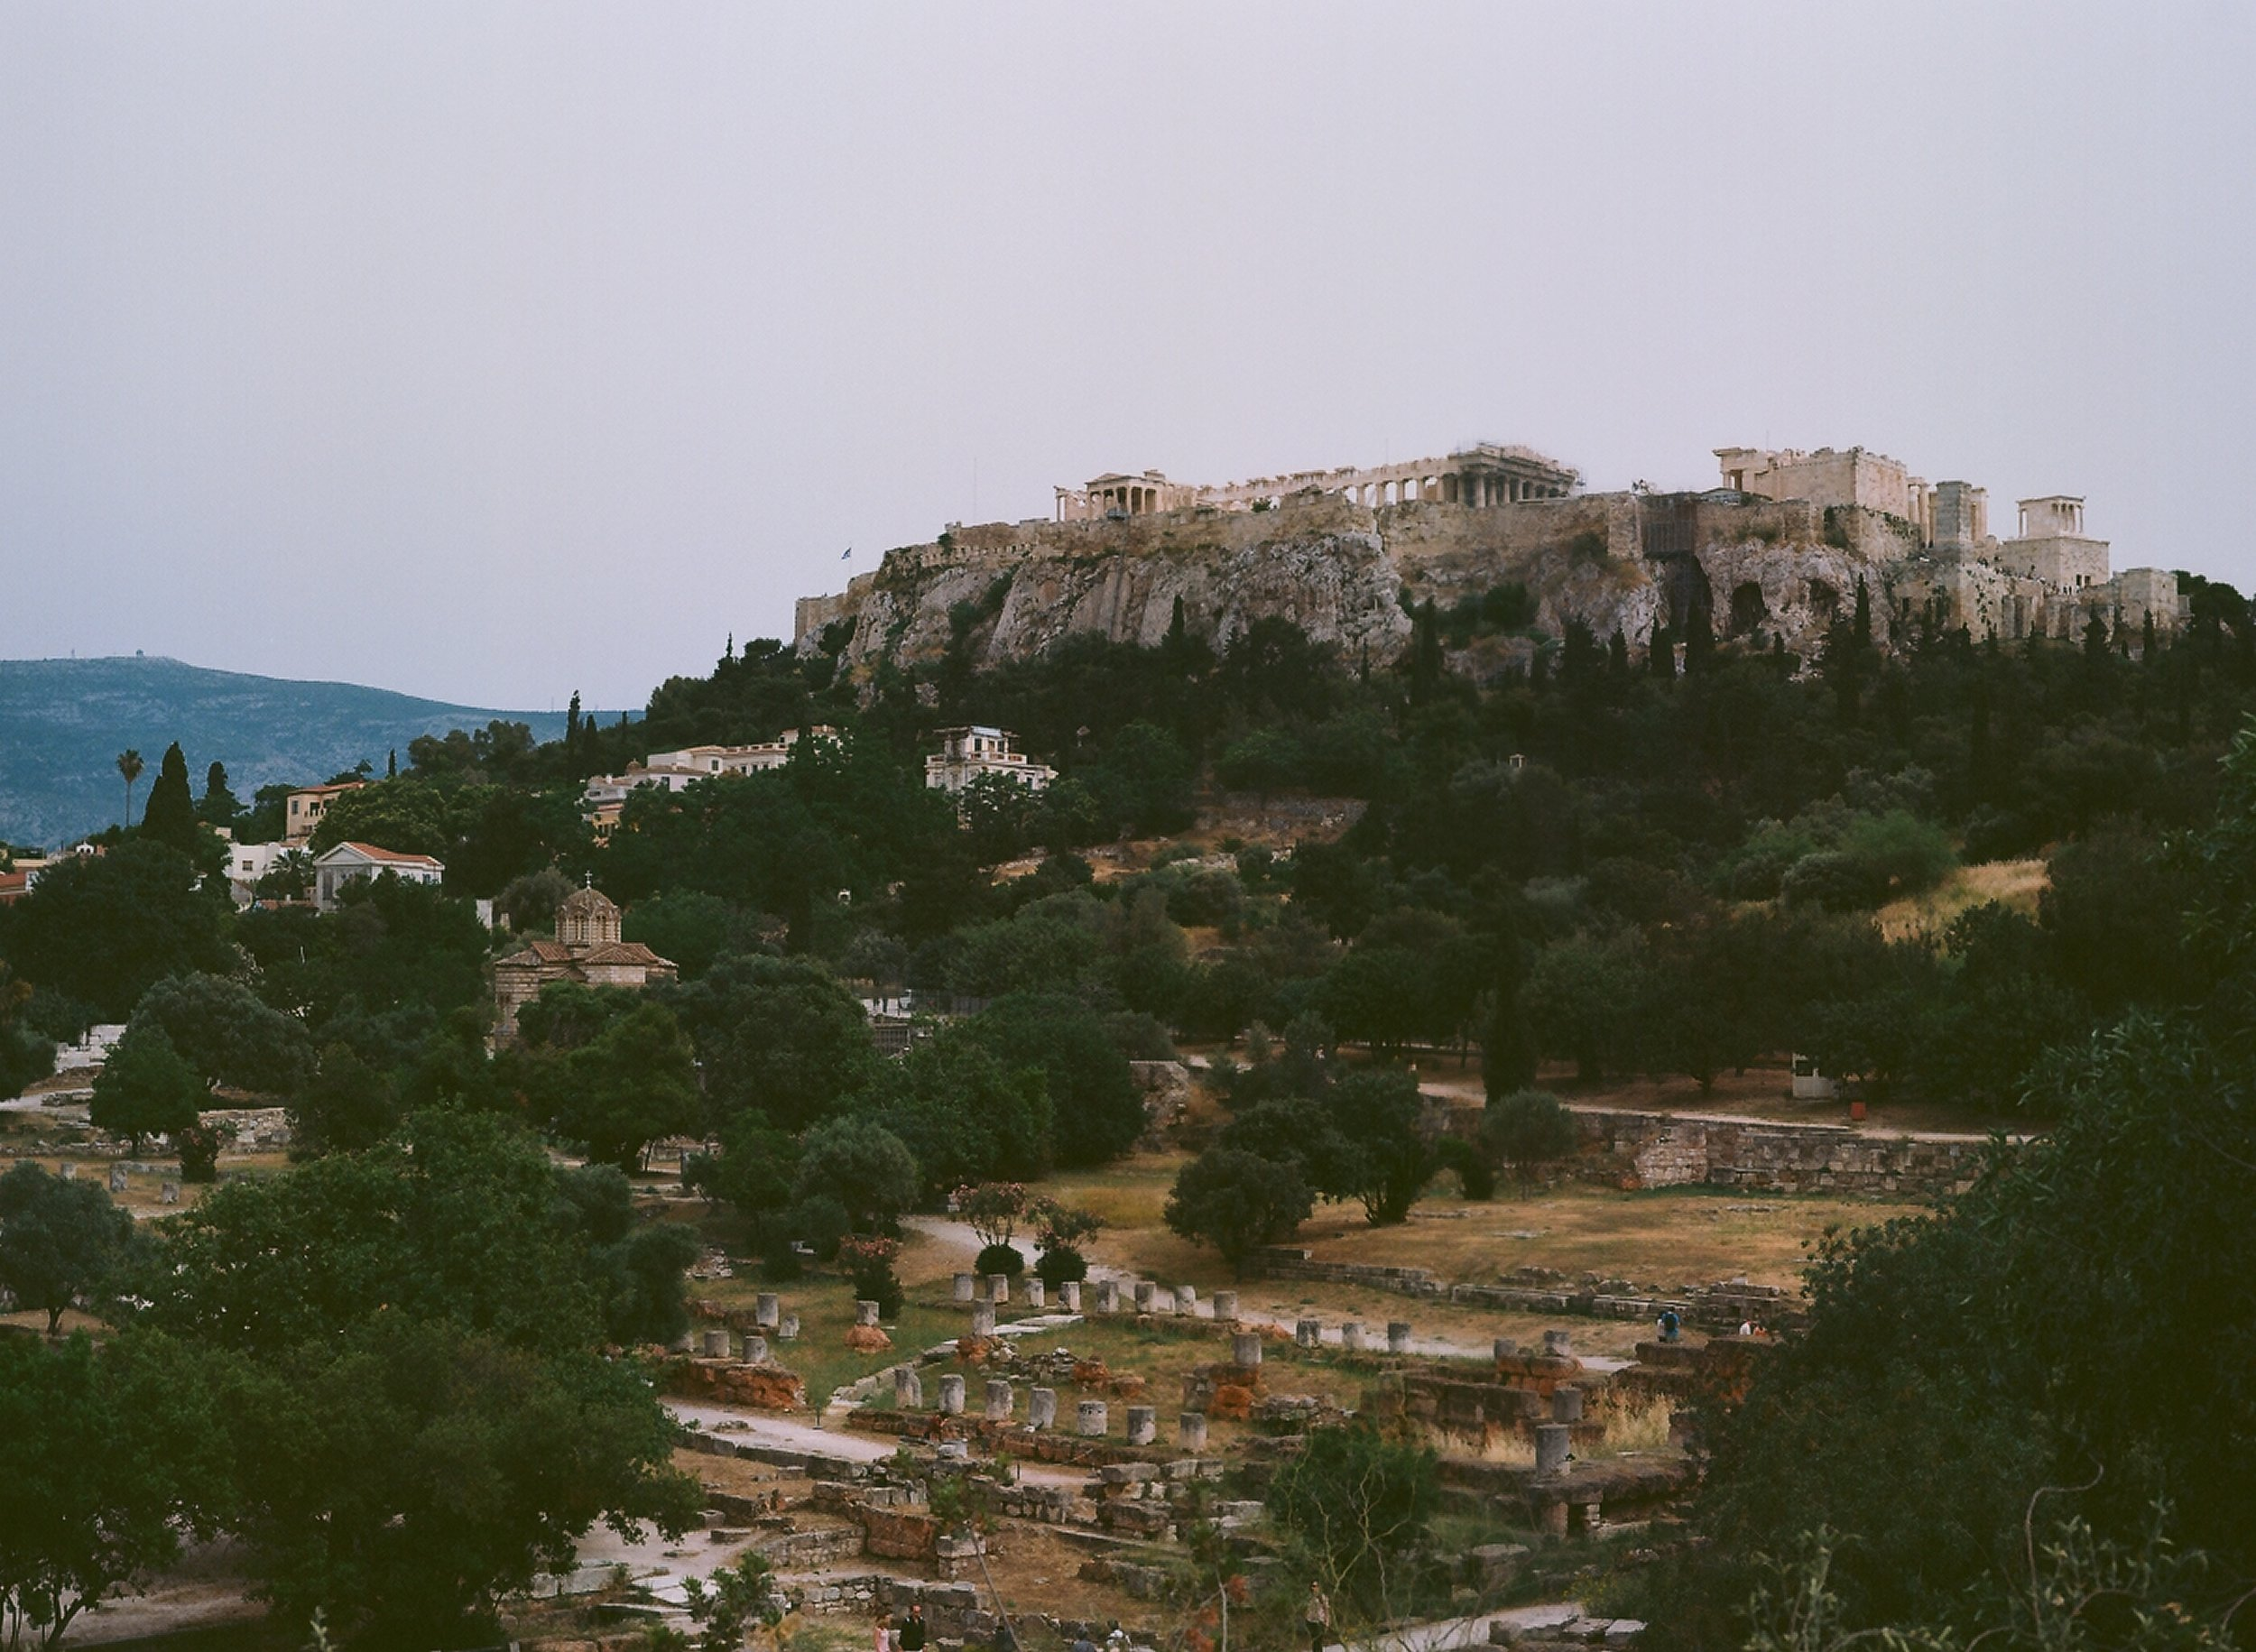 The Athenian Agora and the idea of Western civilization encapsulated on a rock.